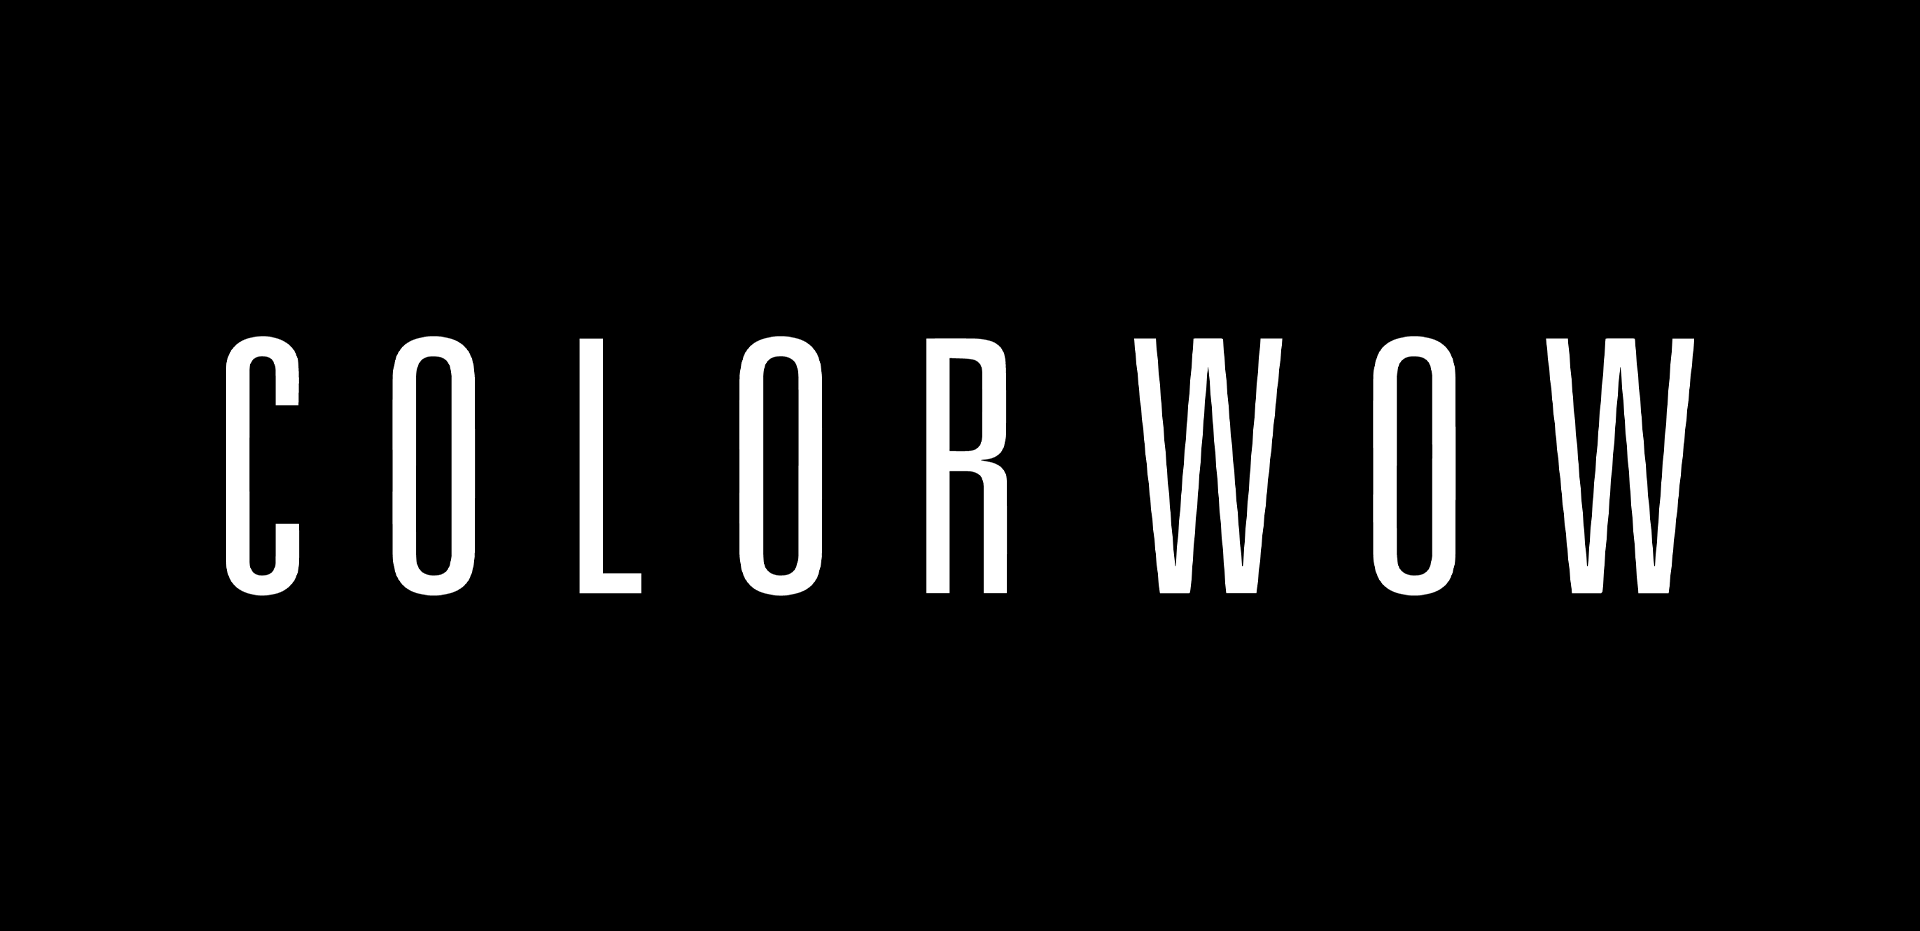 cohorted, luxe, color wow, competition